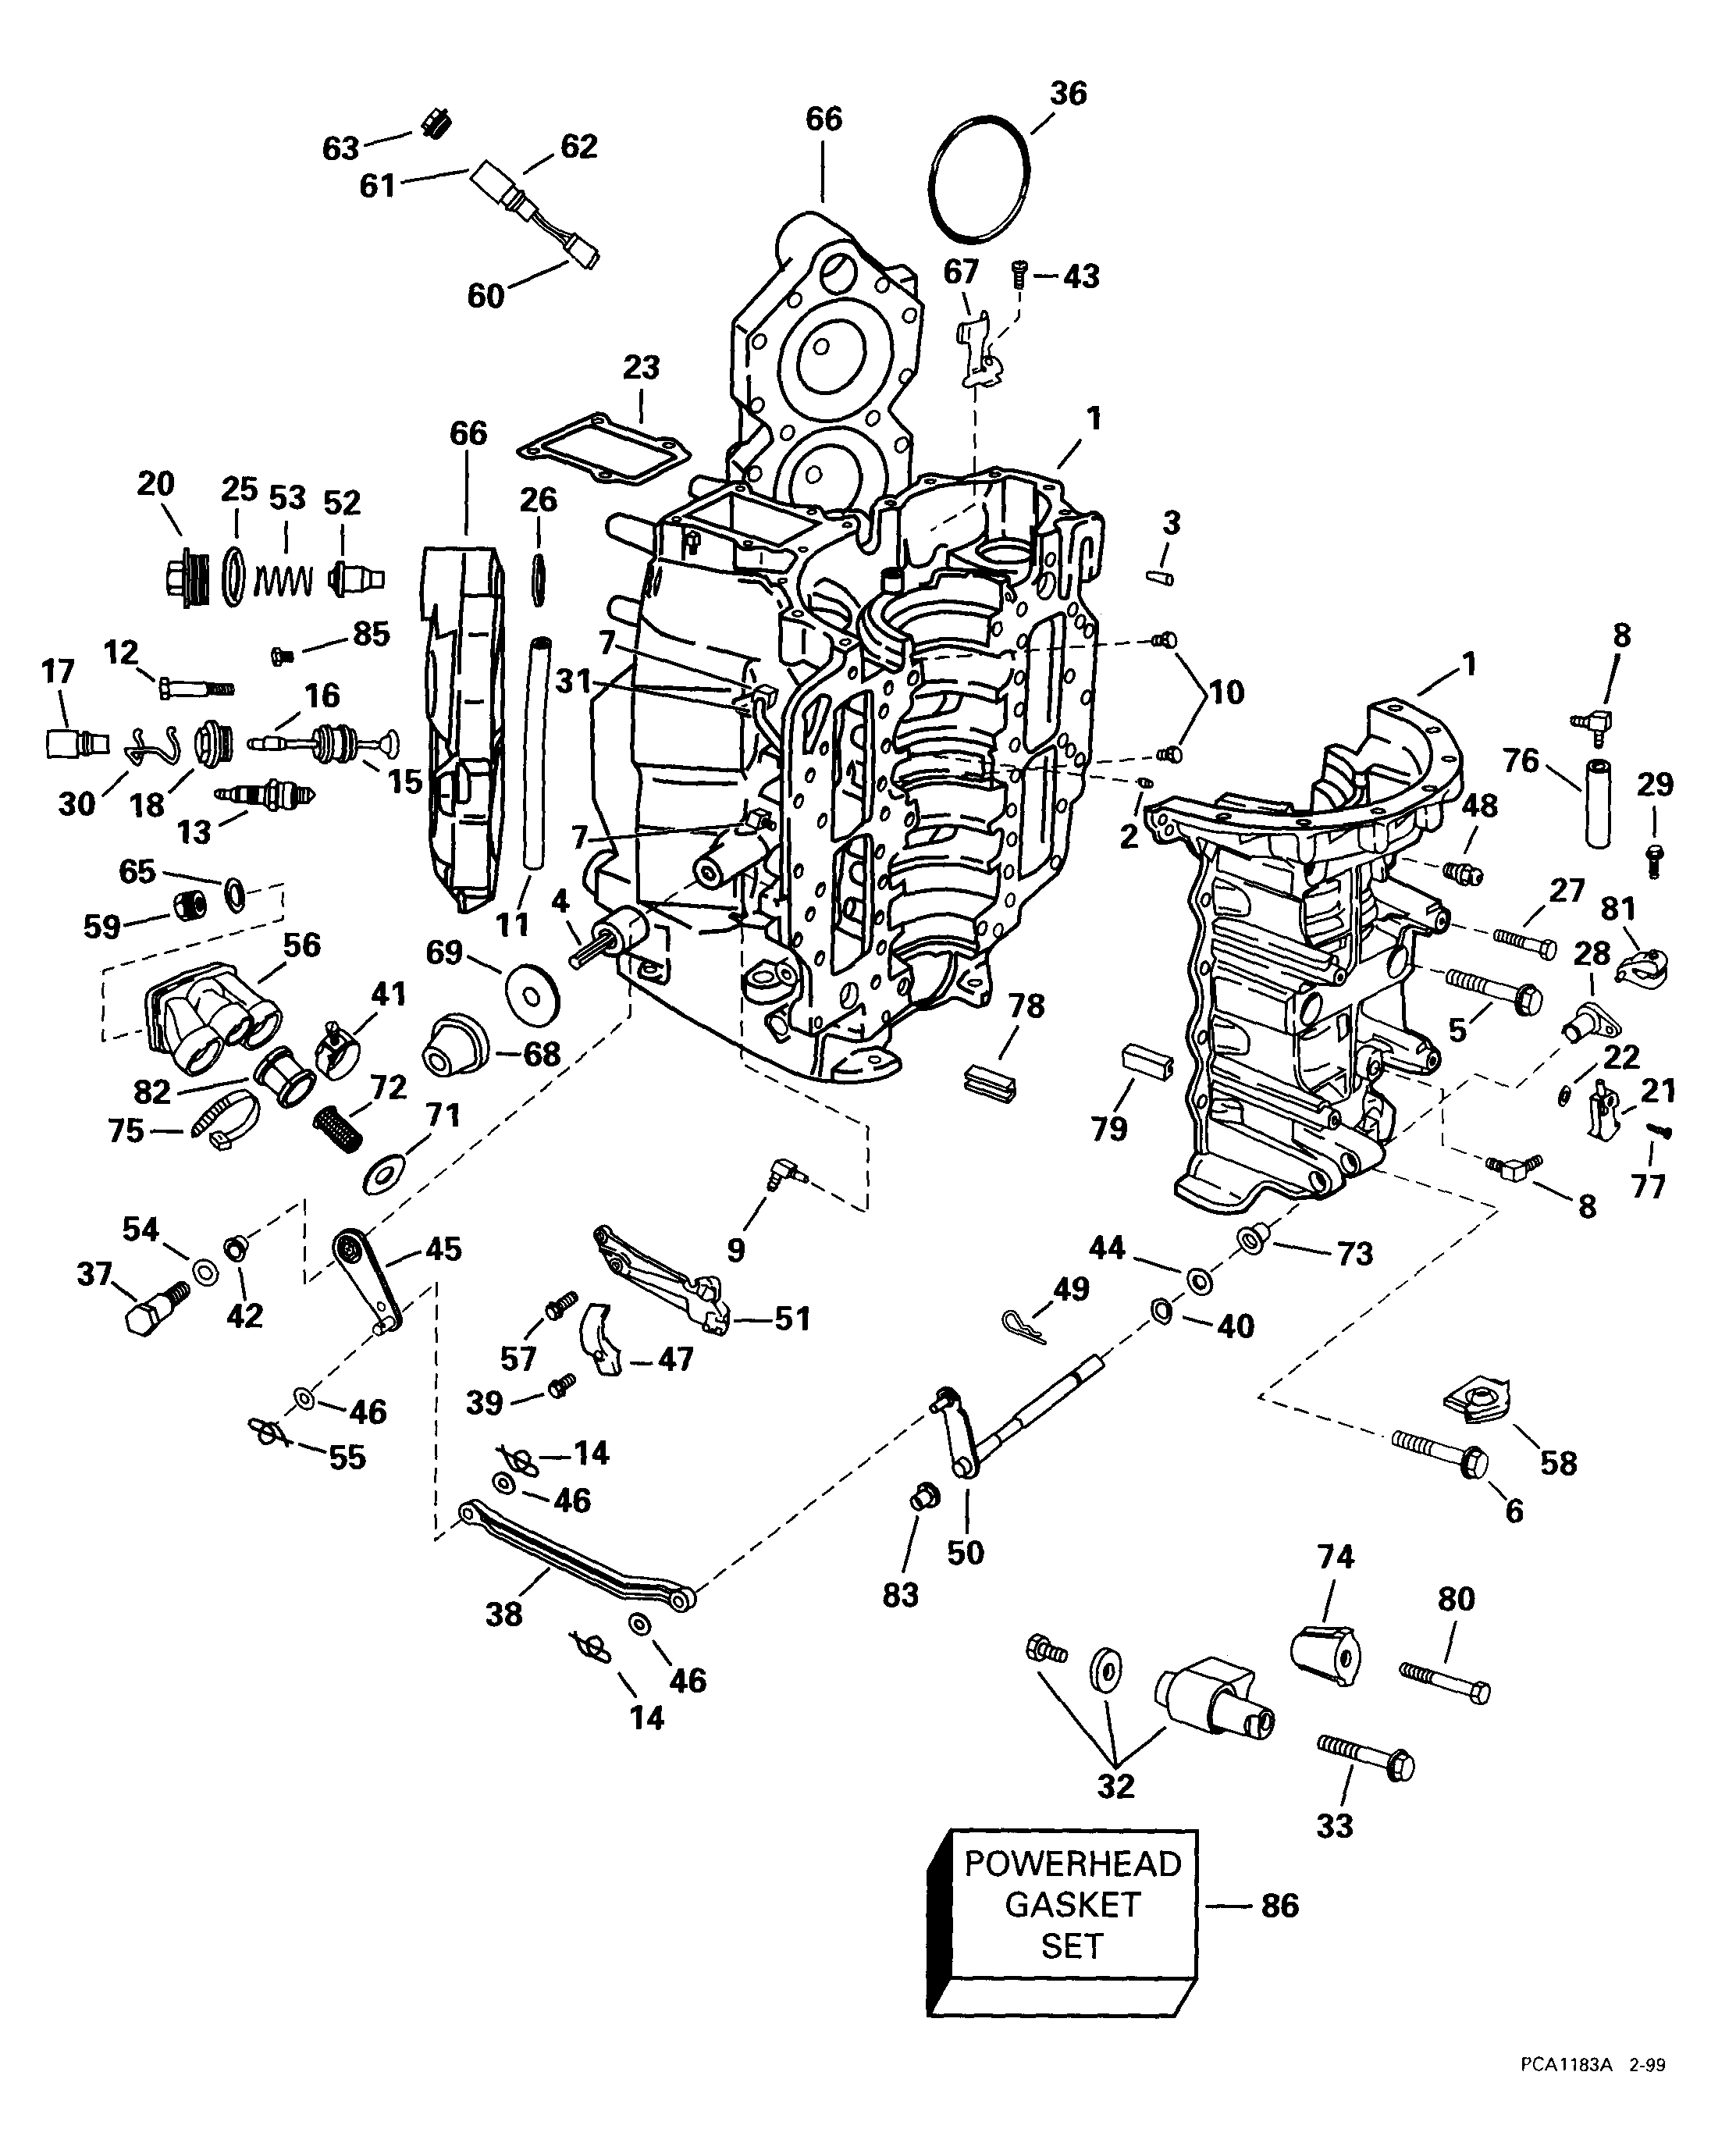 Outboard Motor Trim Cylinder Schematics furthermore 649258 1980 9 9hp Evinrude Kill Switch furthermore 371378585445 as well Outboardmotor further 4 stroke verado inline 6. on 90 hp force outboard wiring diagram